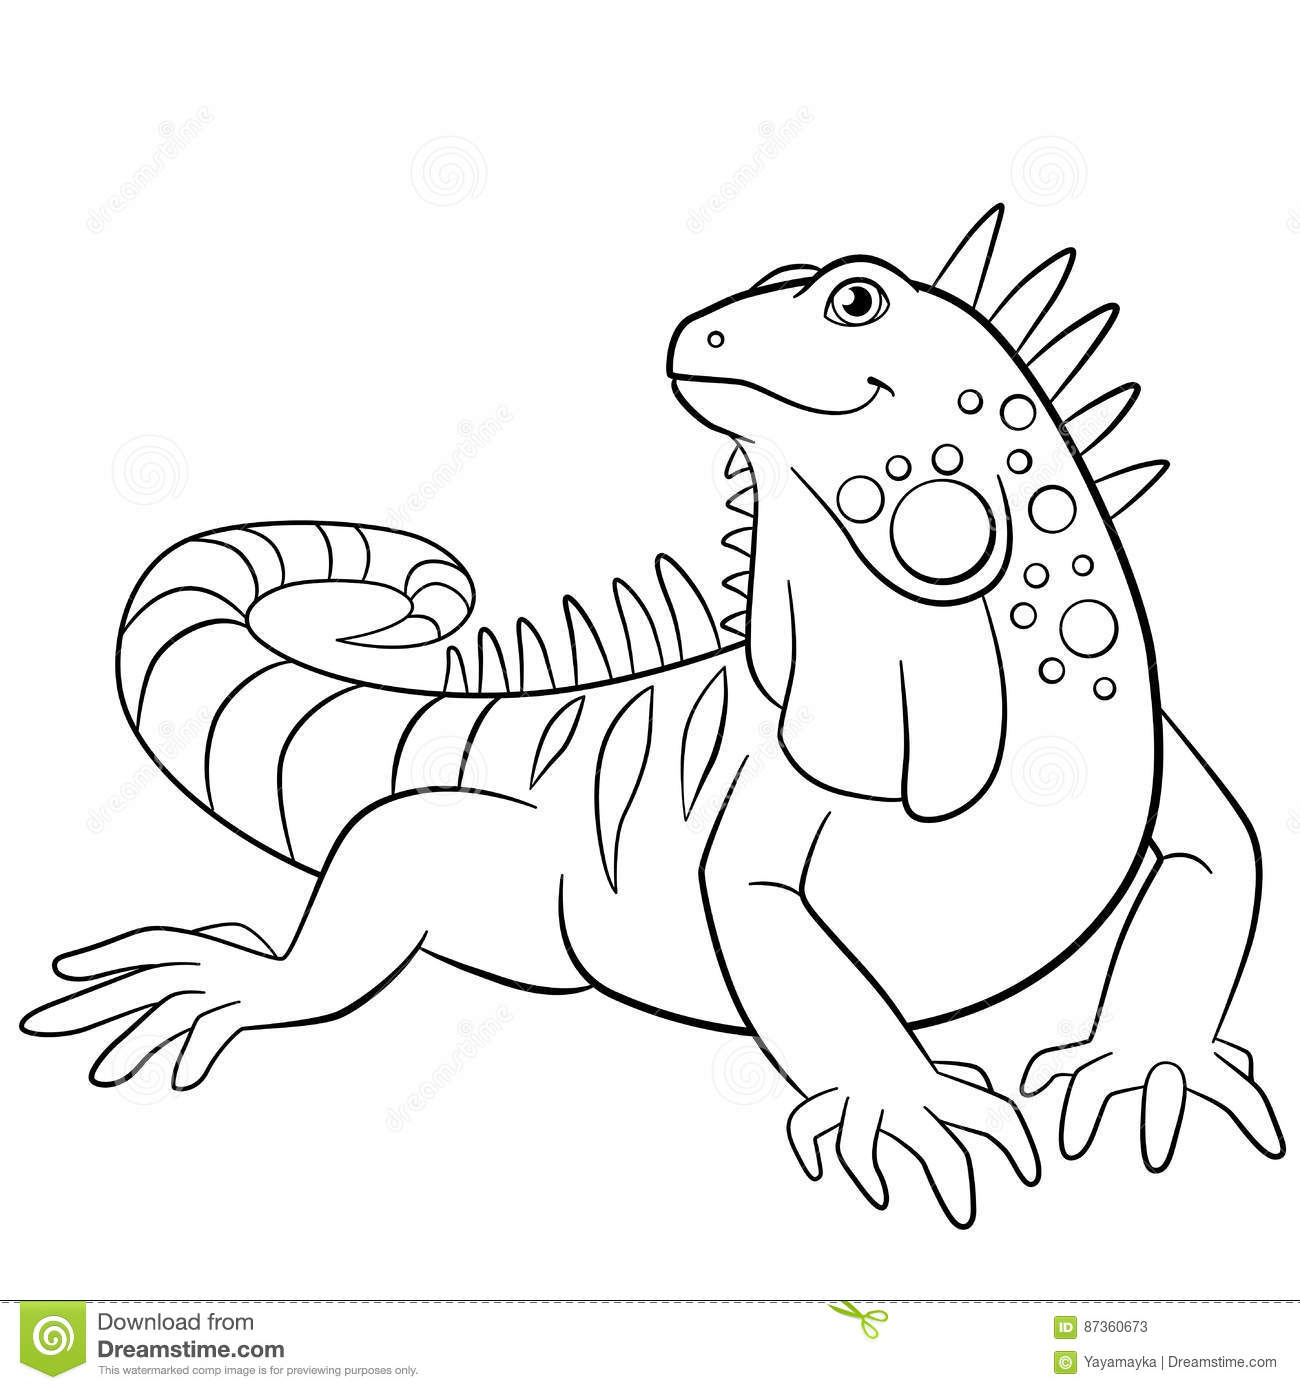 Coloring Pages Cute Iguana Smiles Stock Vector Illustration Of